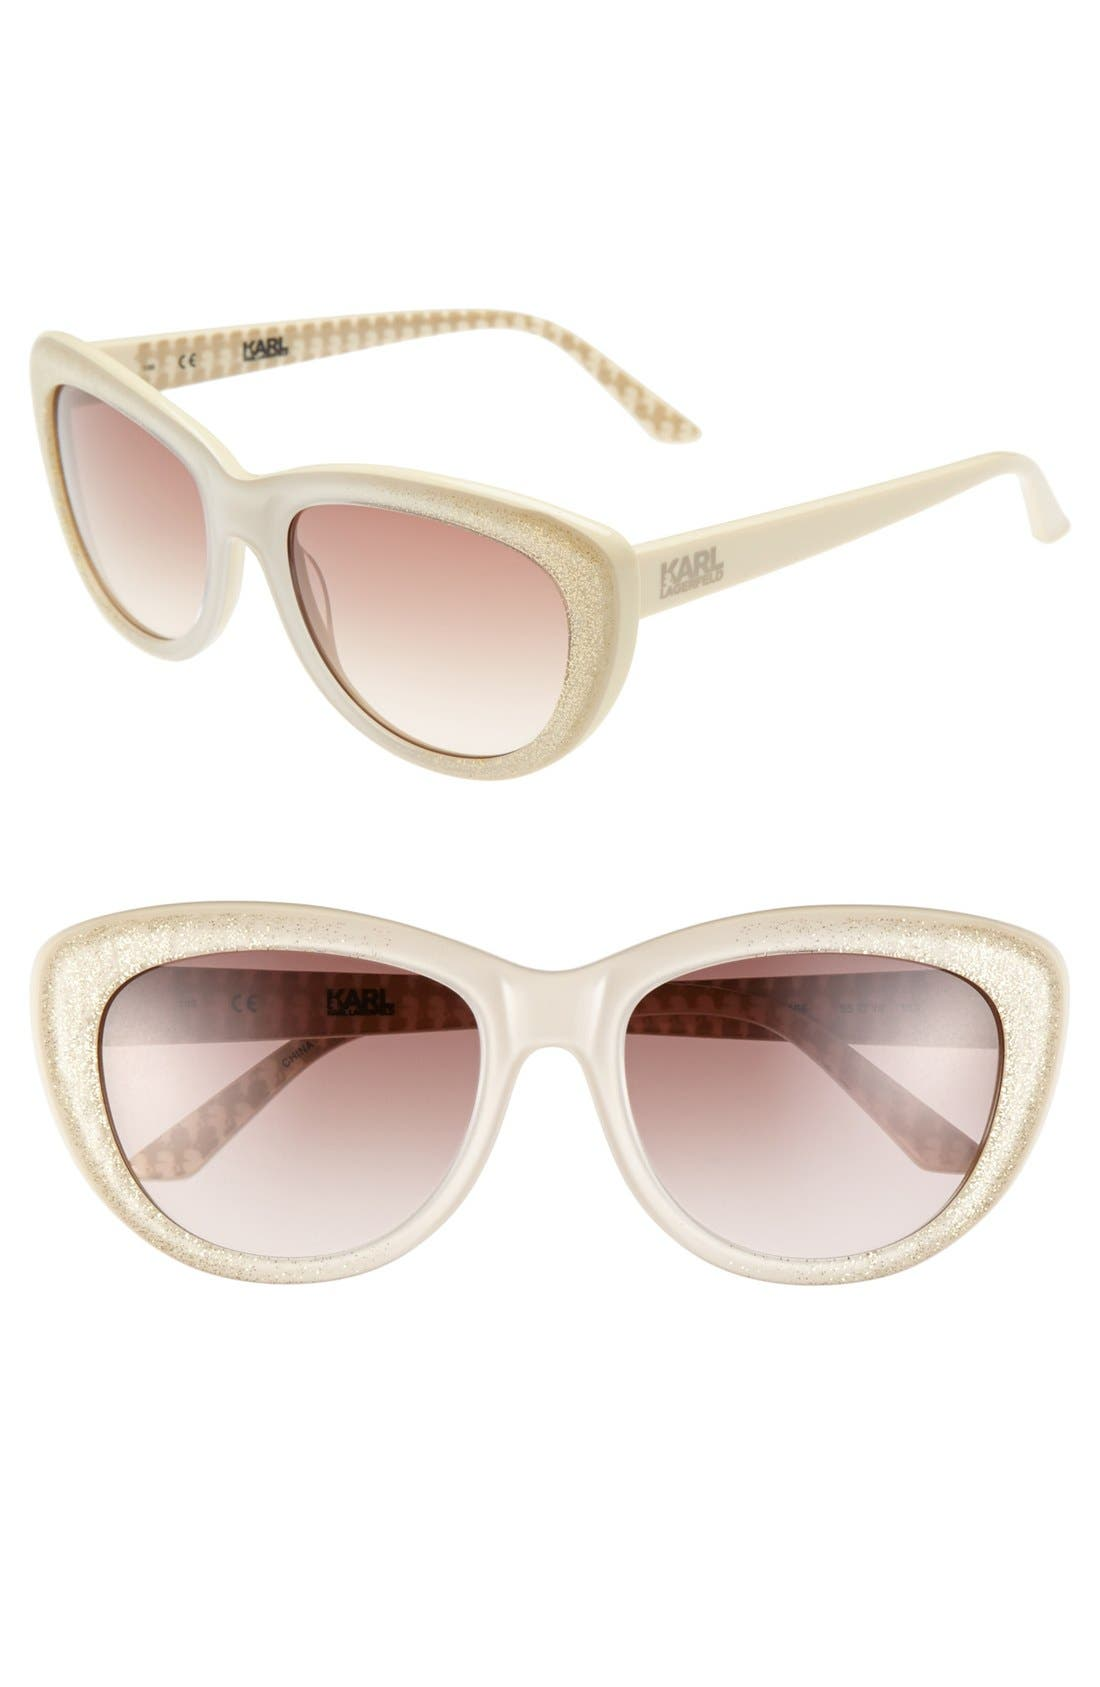 Alternate Image 1 Selected - Karl Lagerfeld 55mm Cat Eye Sunglasses